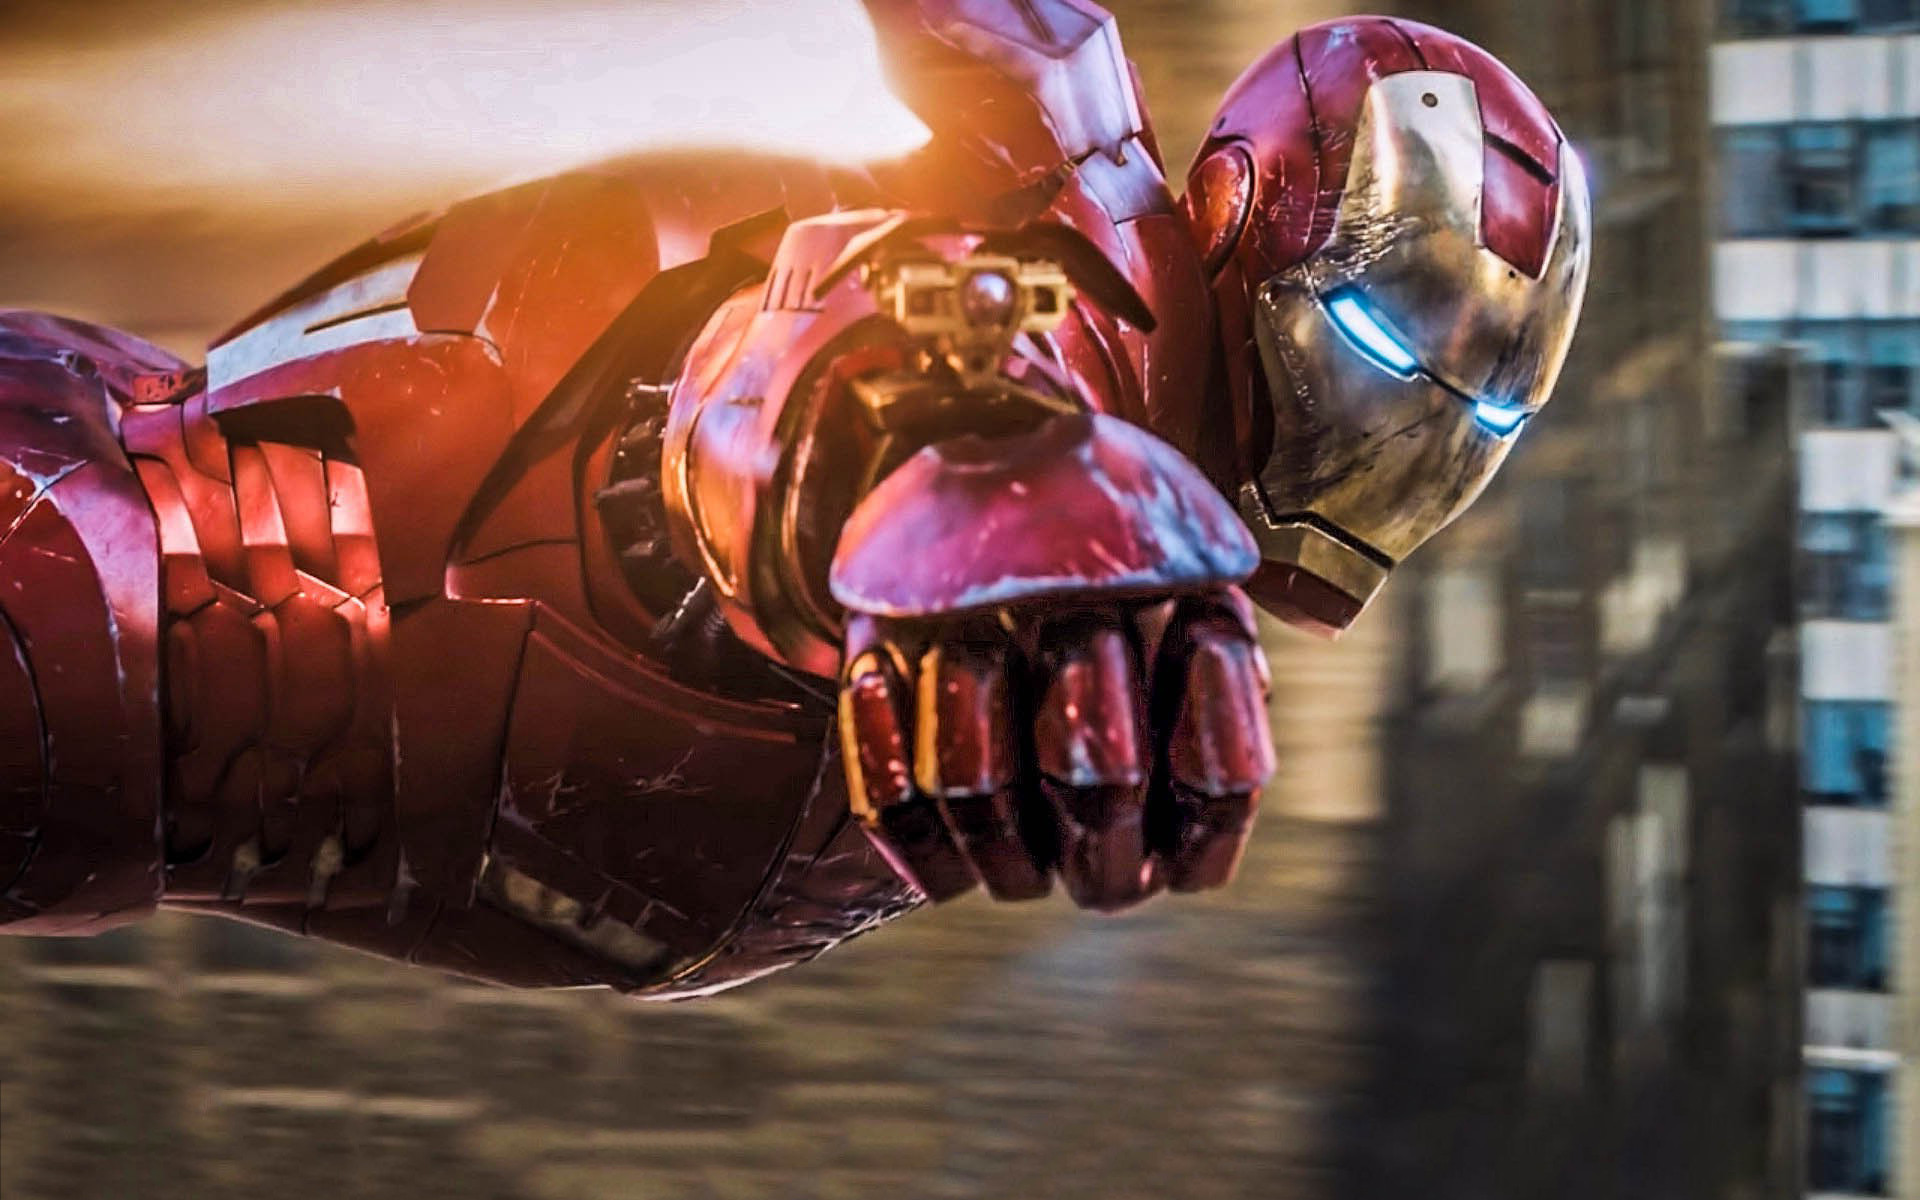 iron man wallpapers hd 1080p | Desktop Backgrounds for Free HD .